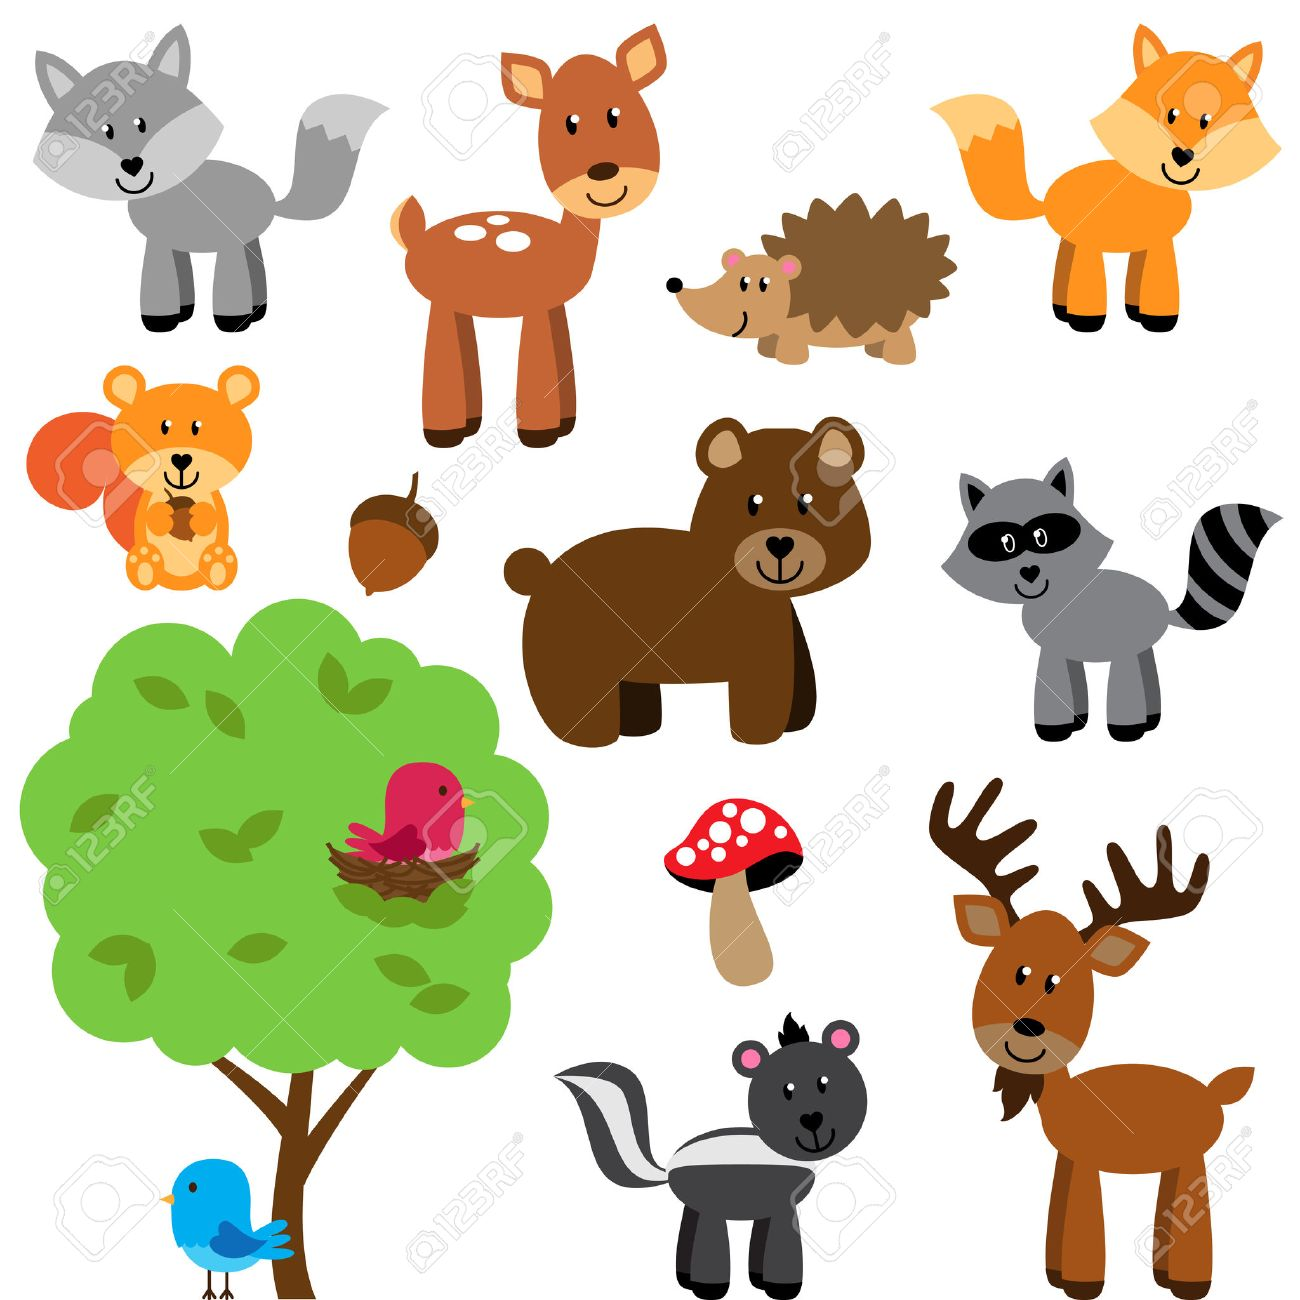 Winter animal clipart